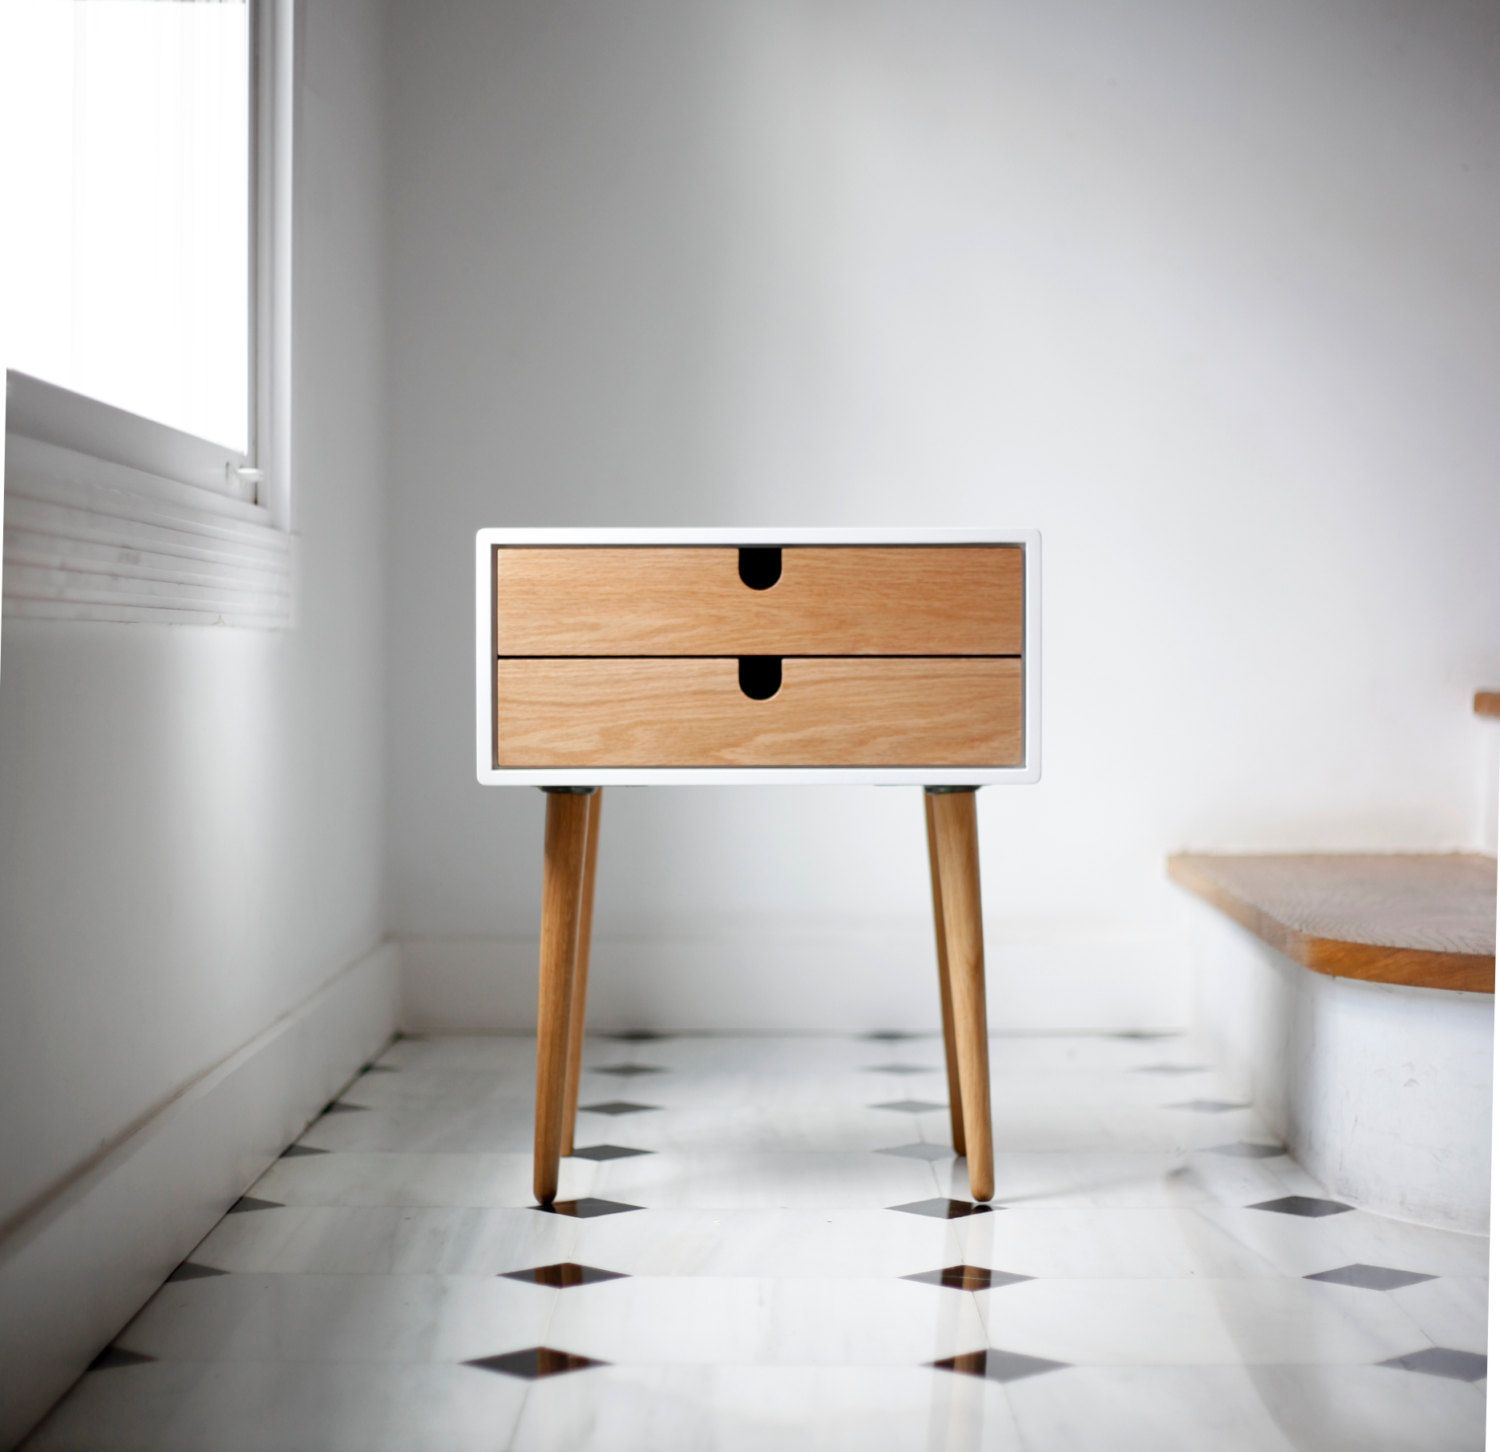 White Nightstand Bedside Table Scandinavian Mid Century Modern Retro Style With 1 Or 2 Drawers And Legs Made Of Oak Wood Bedside Table Scandinavian Scandinavian Furniture White Nightstand